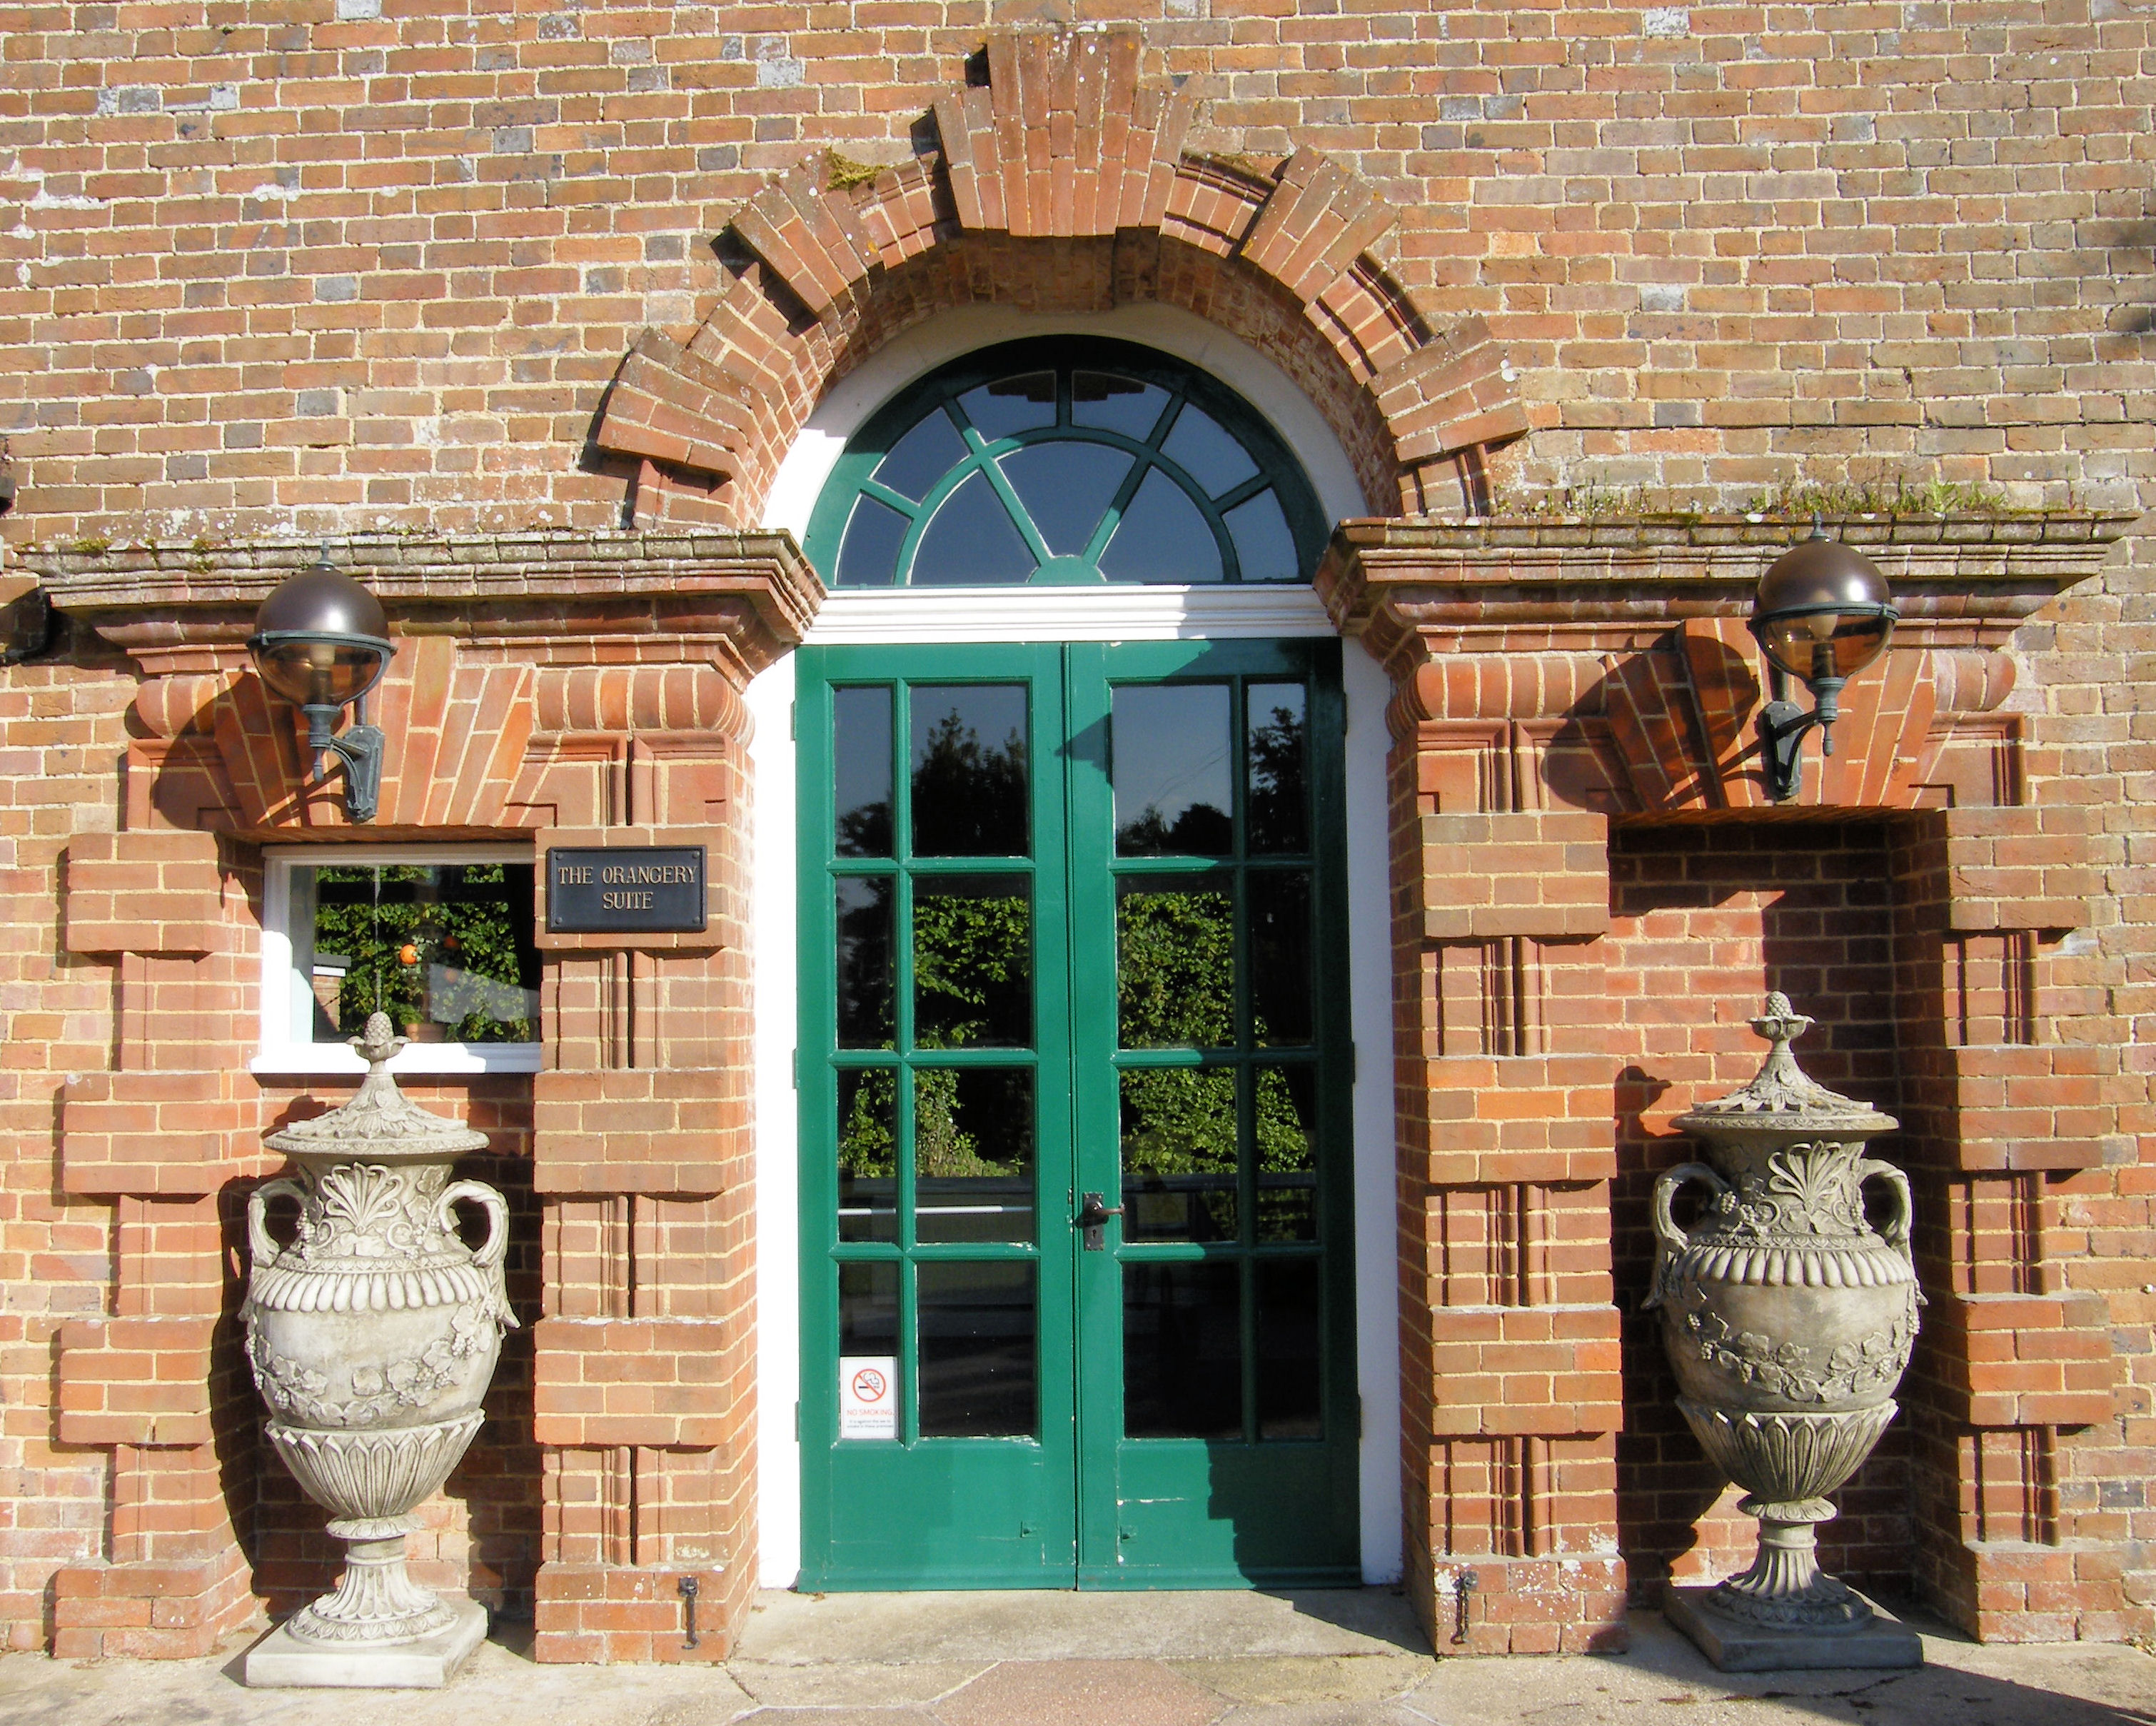 Orangery Suite entrance